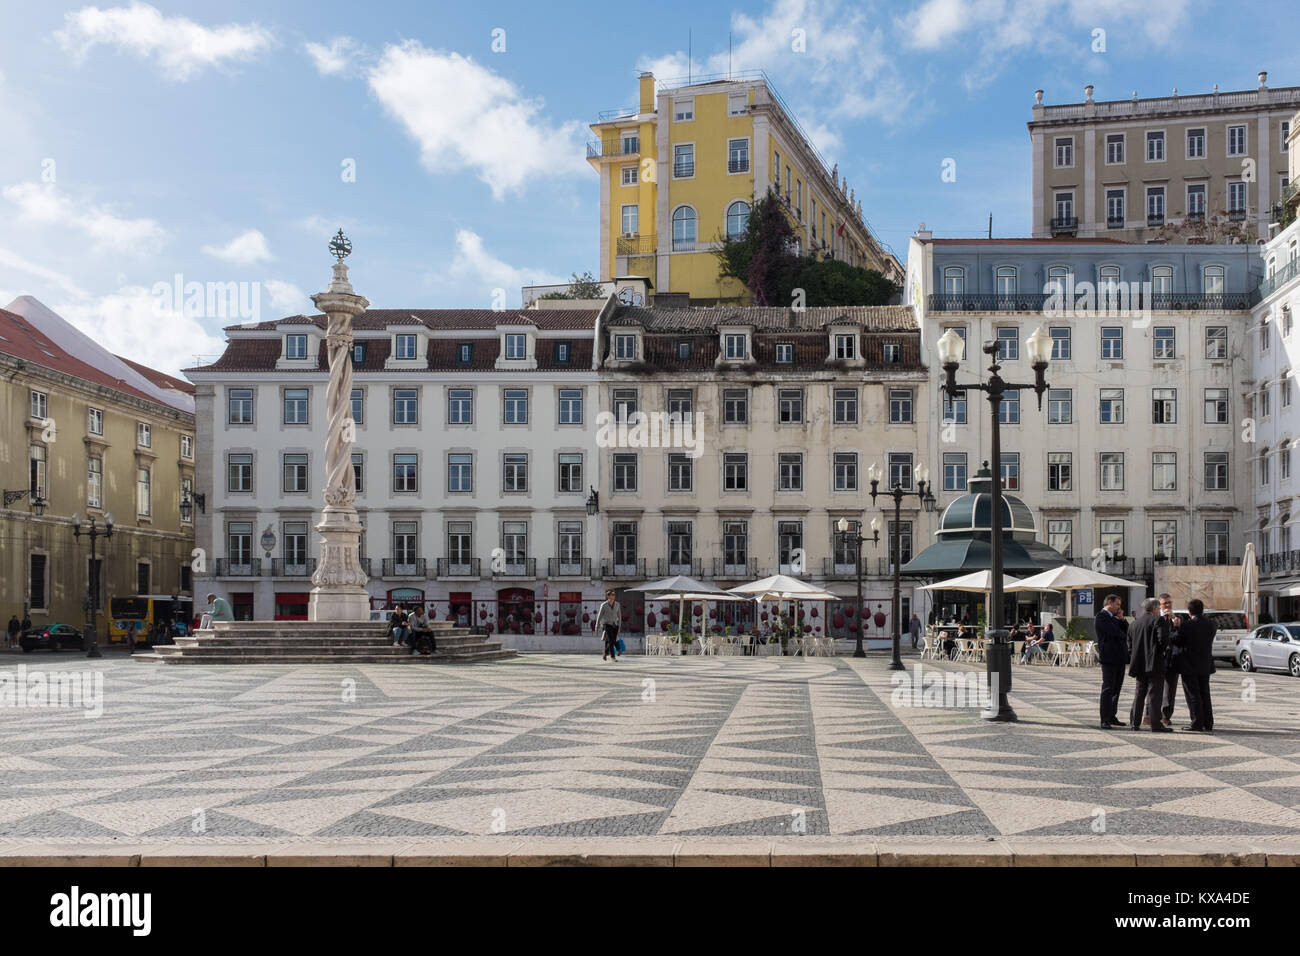 Praca do Municipio or Municipal Square in Lisbon with decorative tiles and tall statue - Stock Image